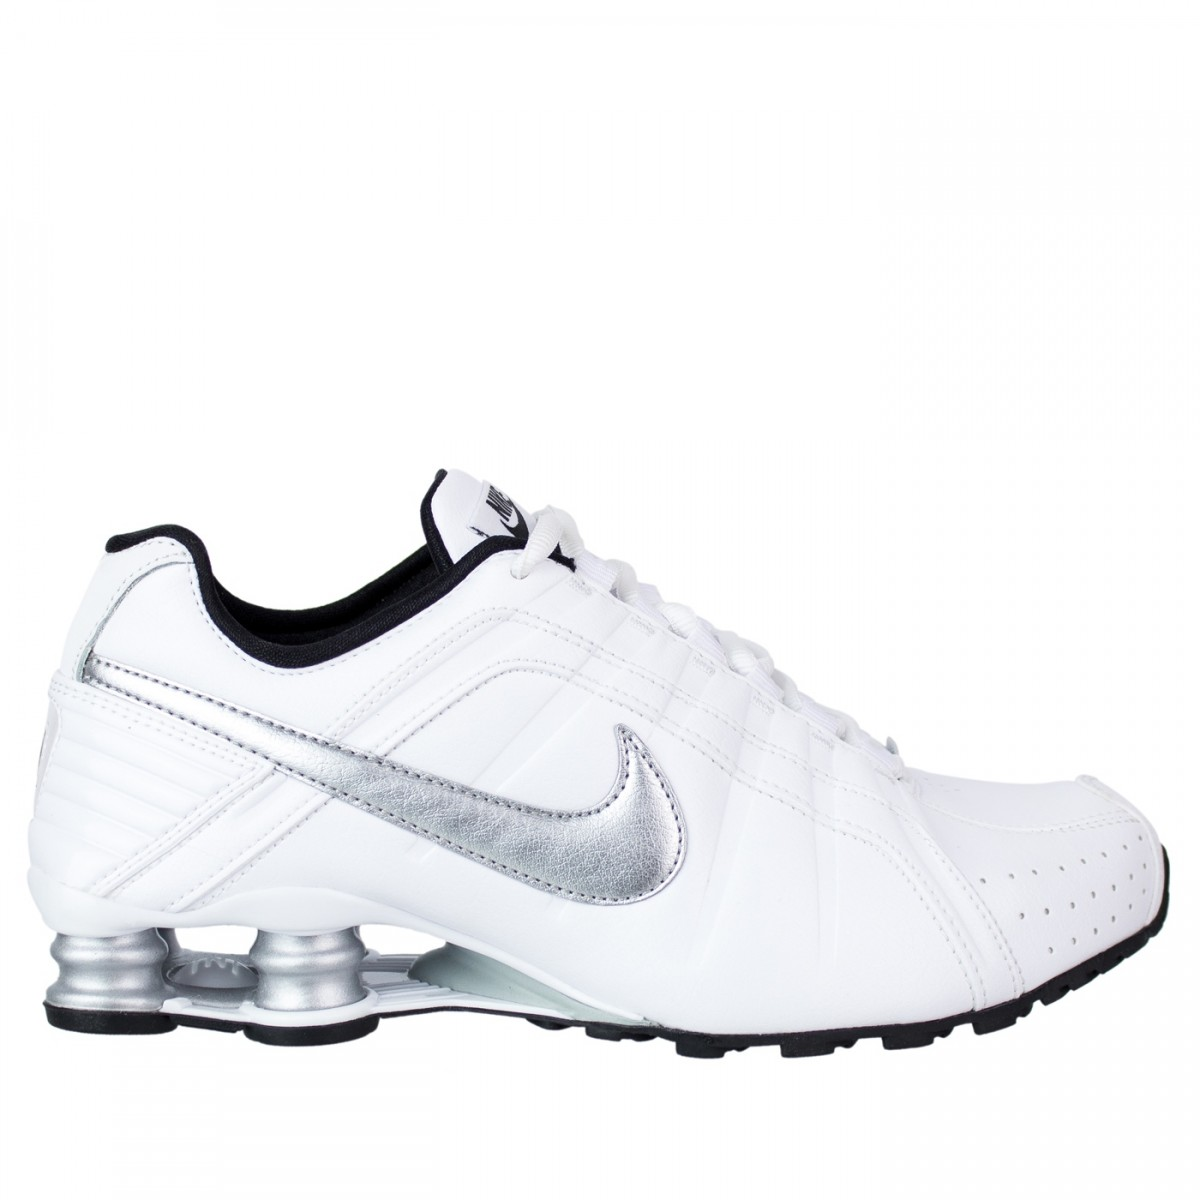 san francisco 3da33 e0f00 Tênis Nike Shox Junior 454340-110